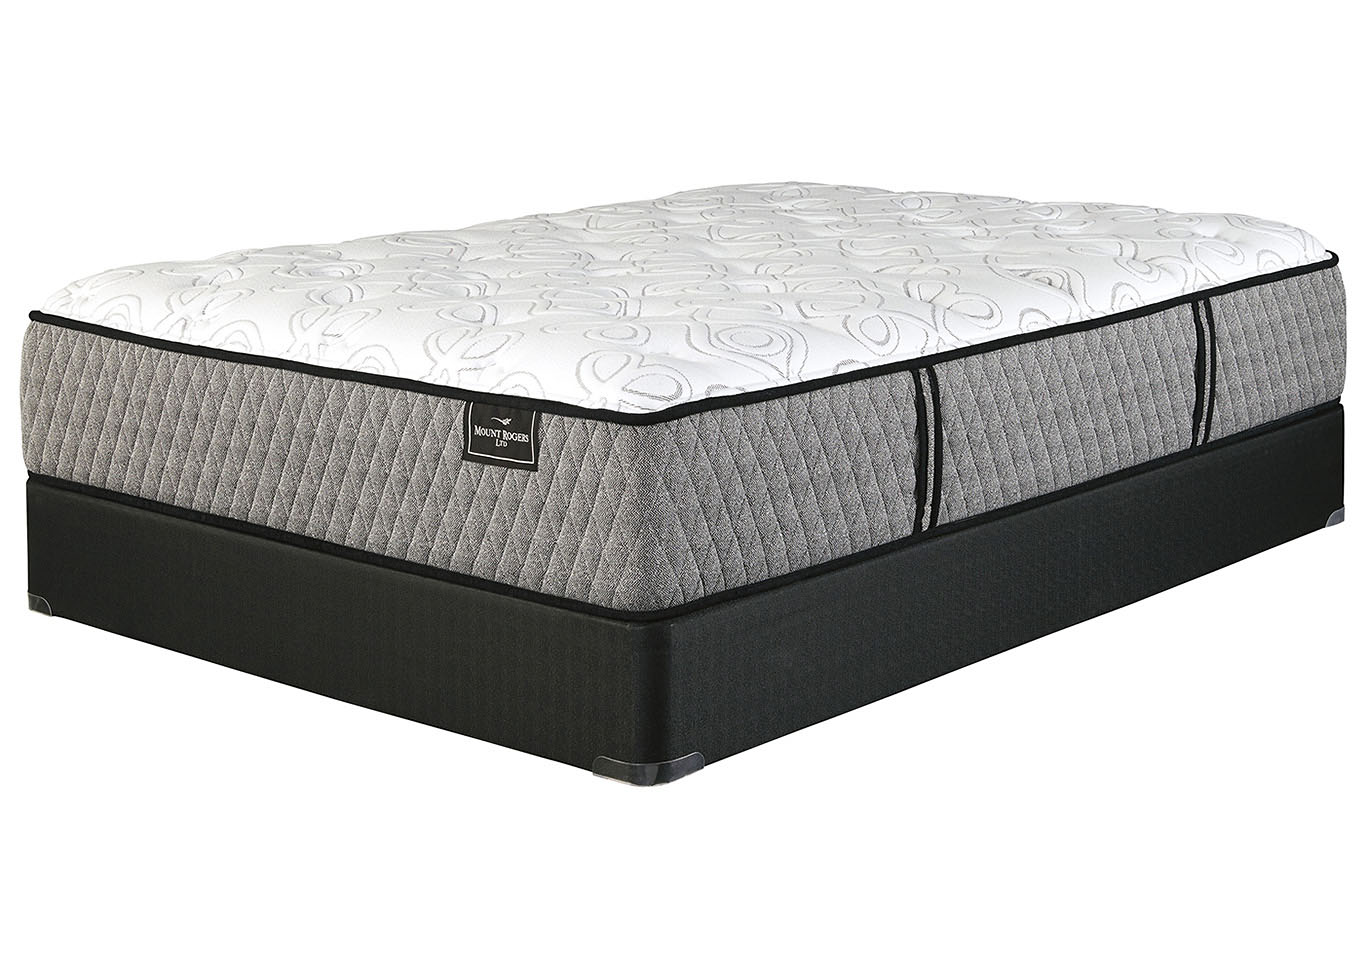 Mt Rogers Ltd Plush White King Mattress,Sierra Sleep by Ashley